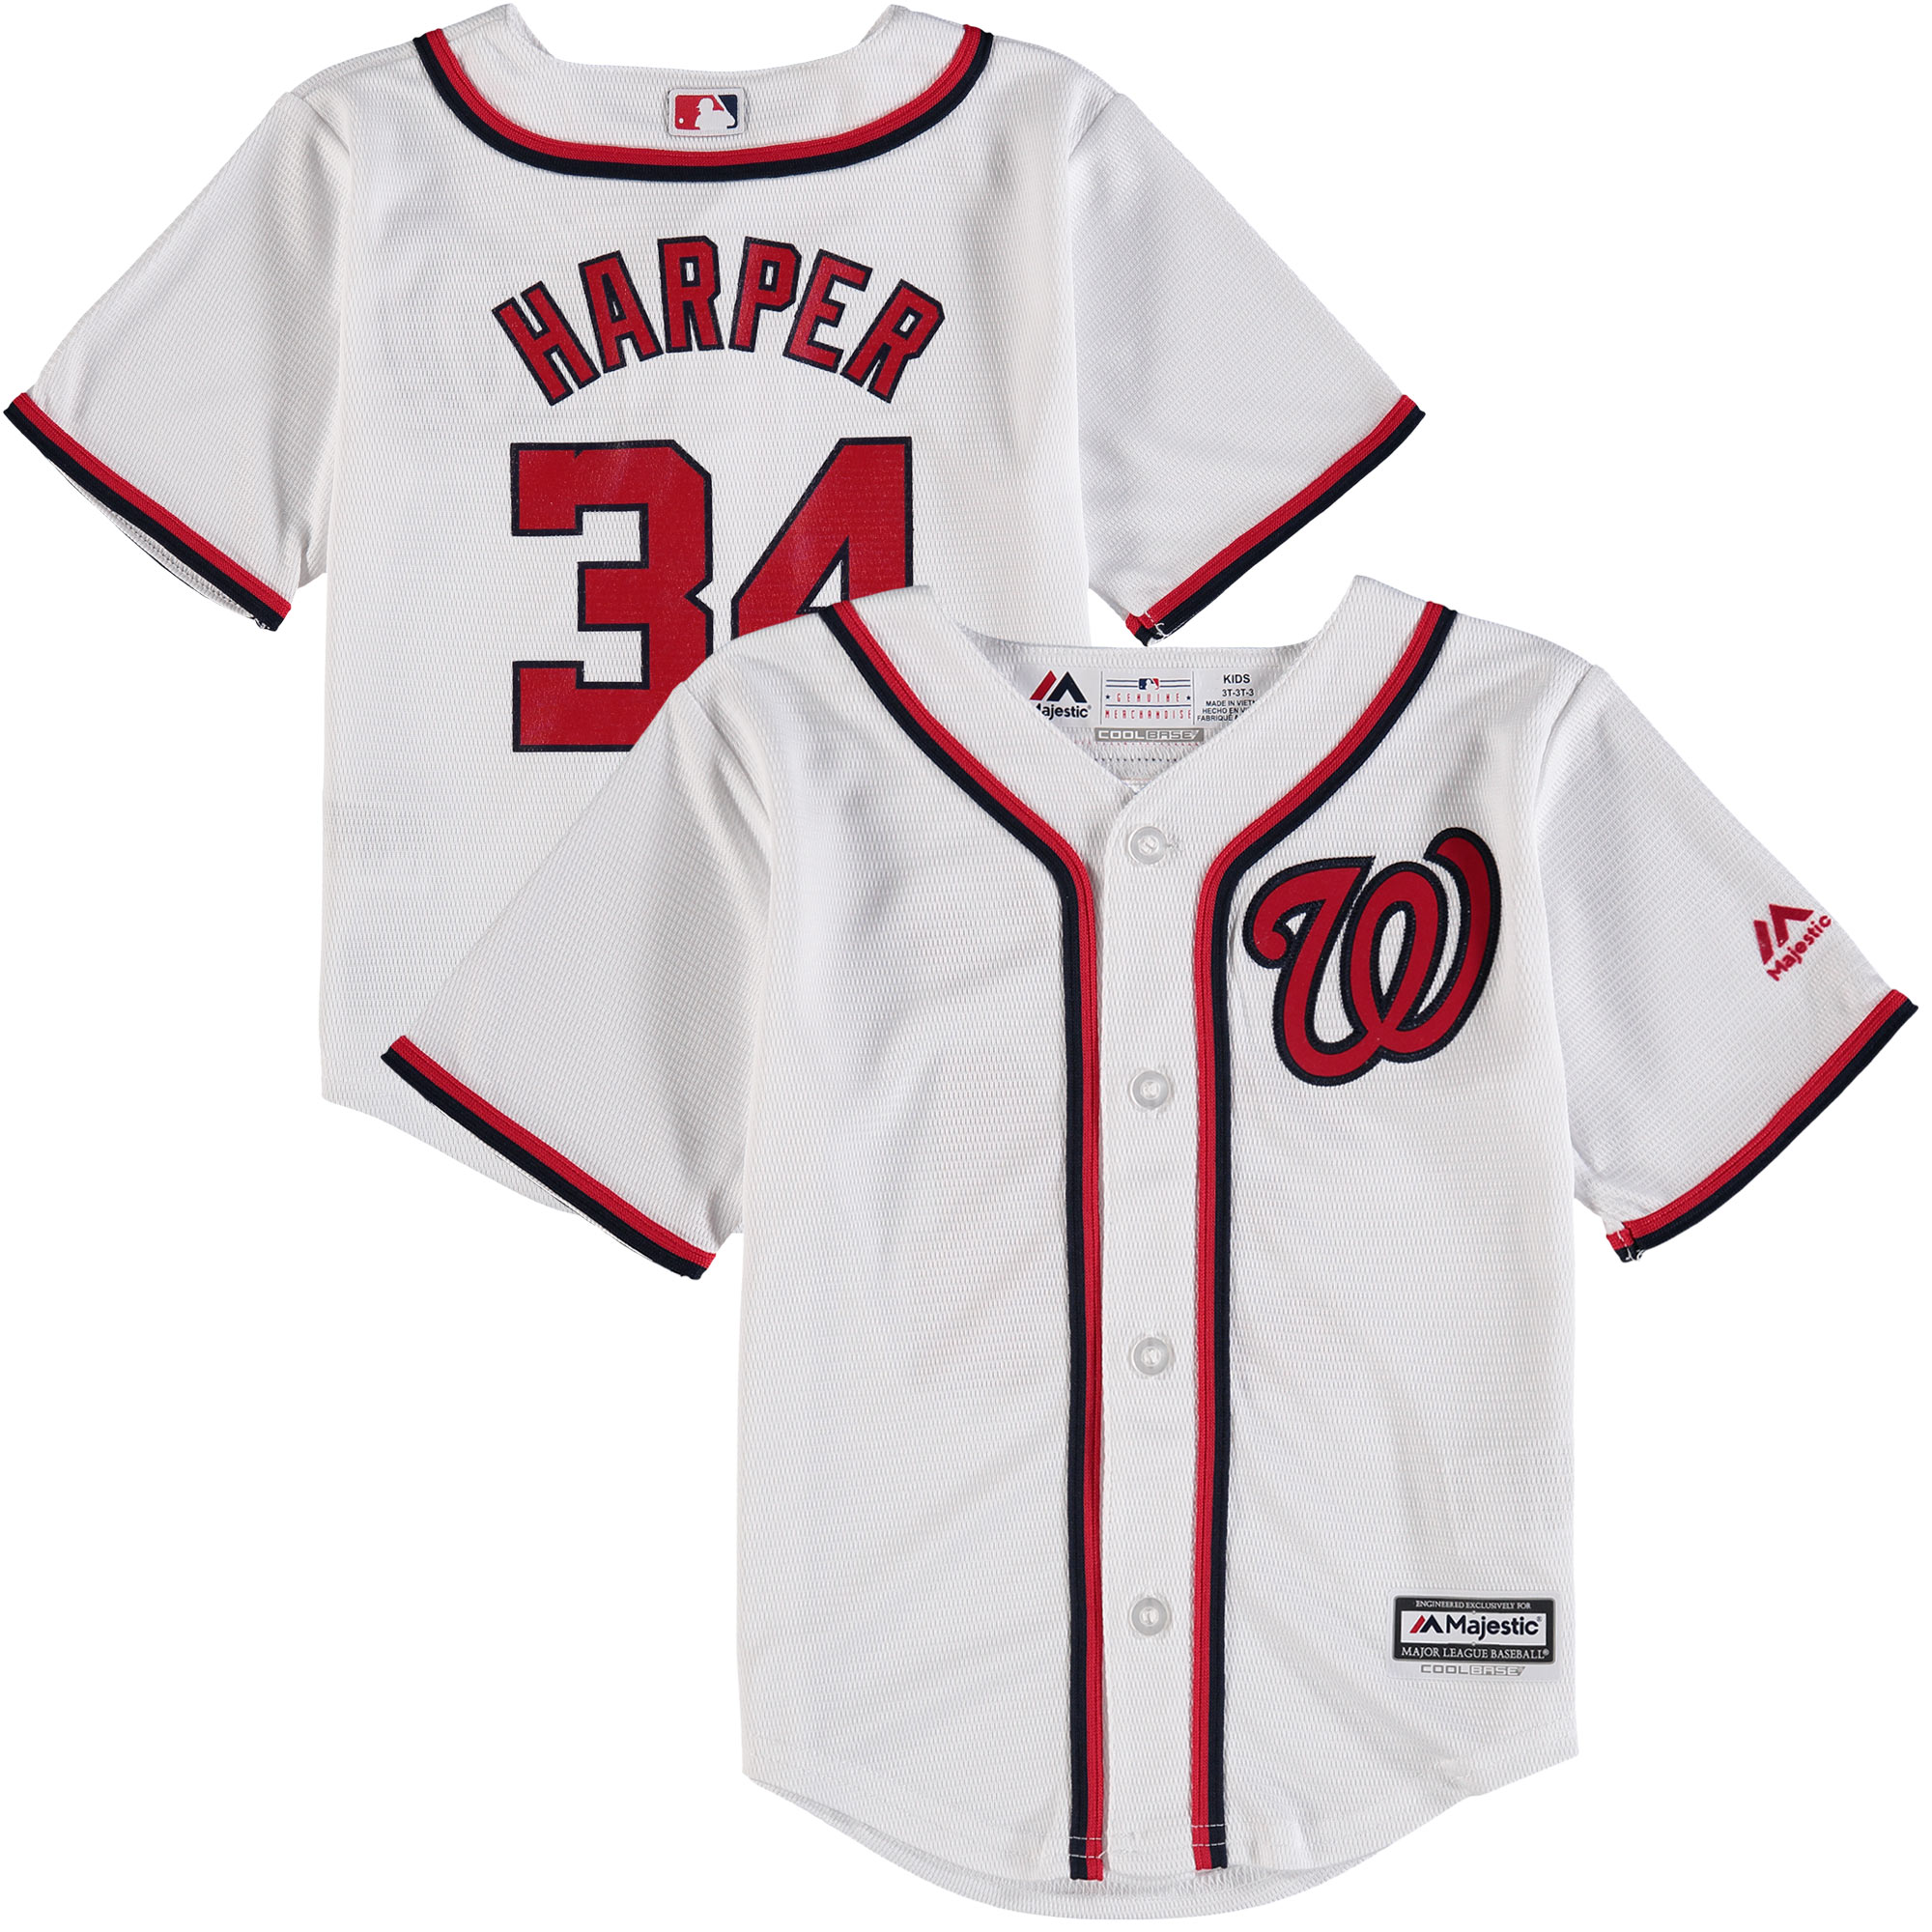 Bryce Harper Washington Nationals Majestic Toddler Home Official Player Cool Base Jersey - White